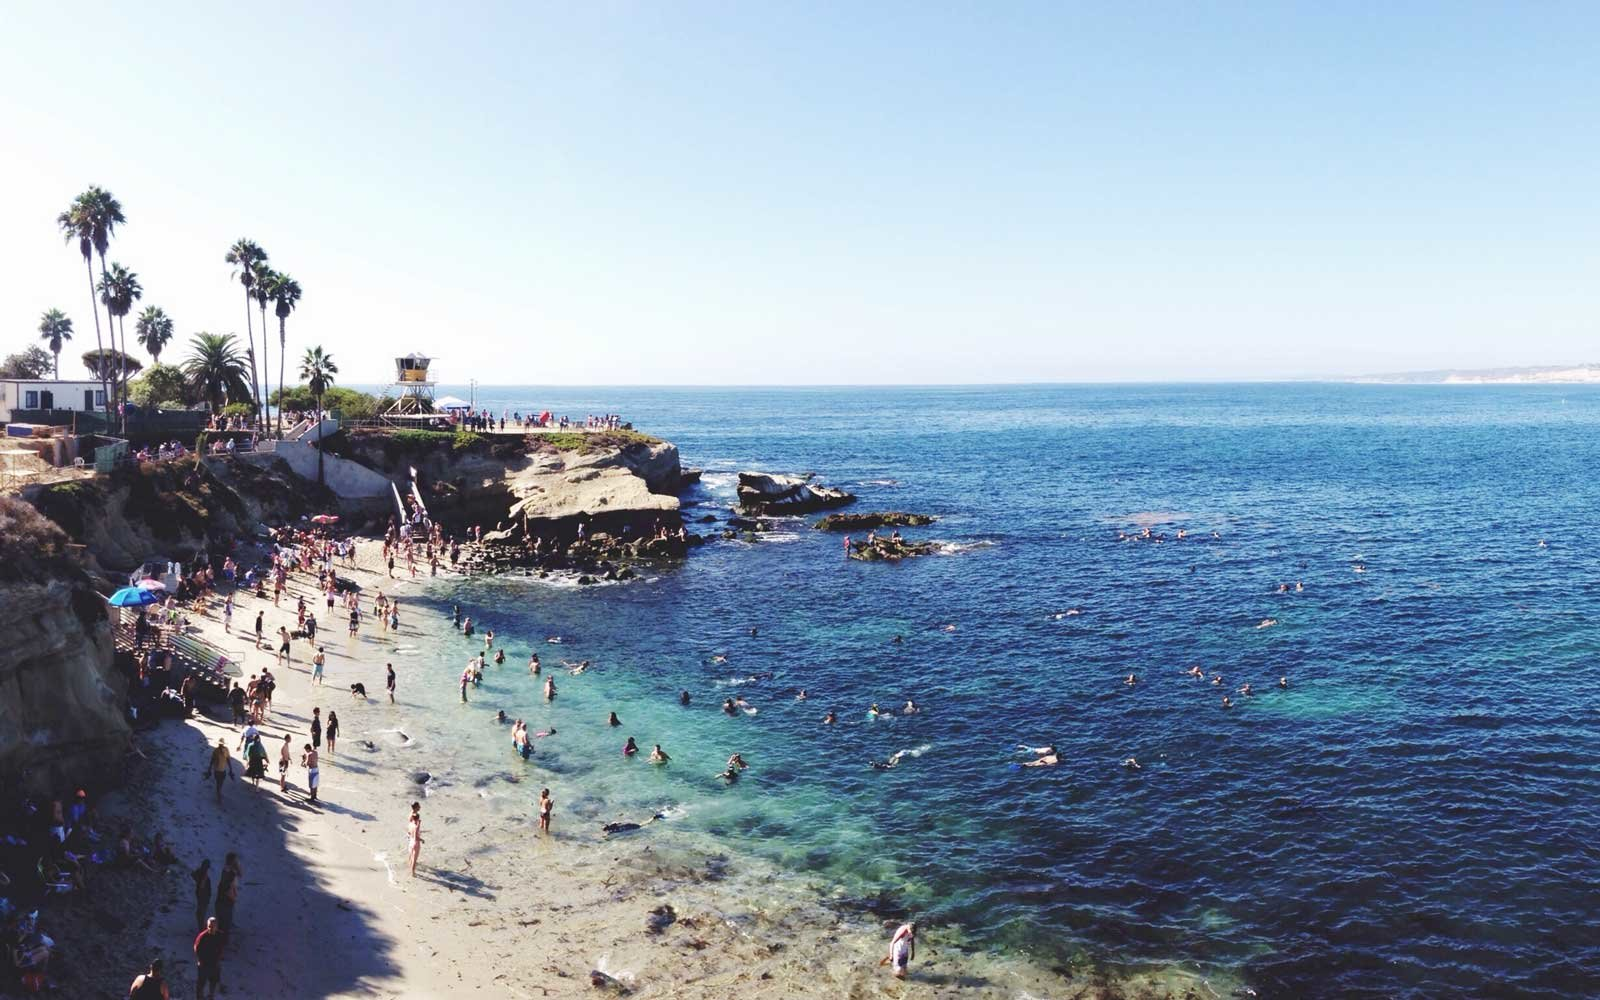 People enjoying the beach on a clear day in La Jolla, California